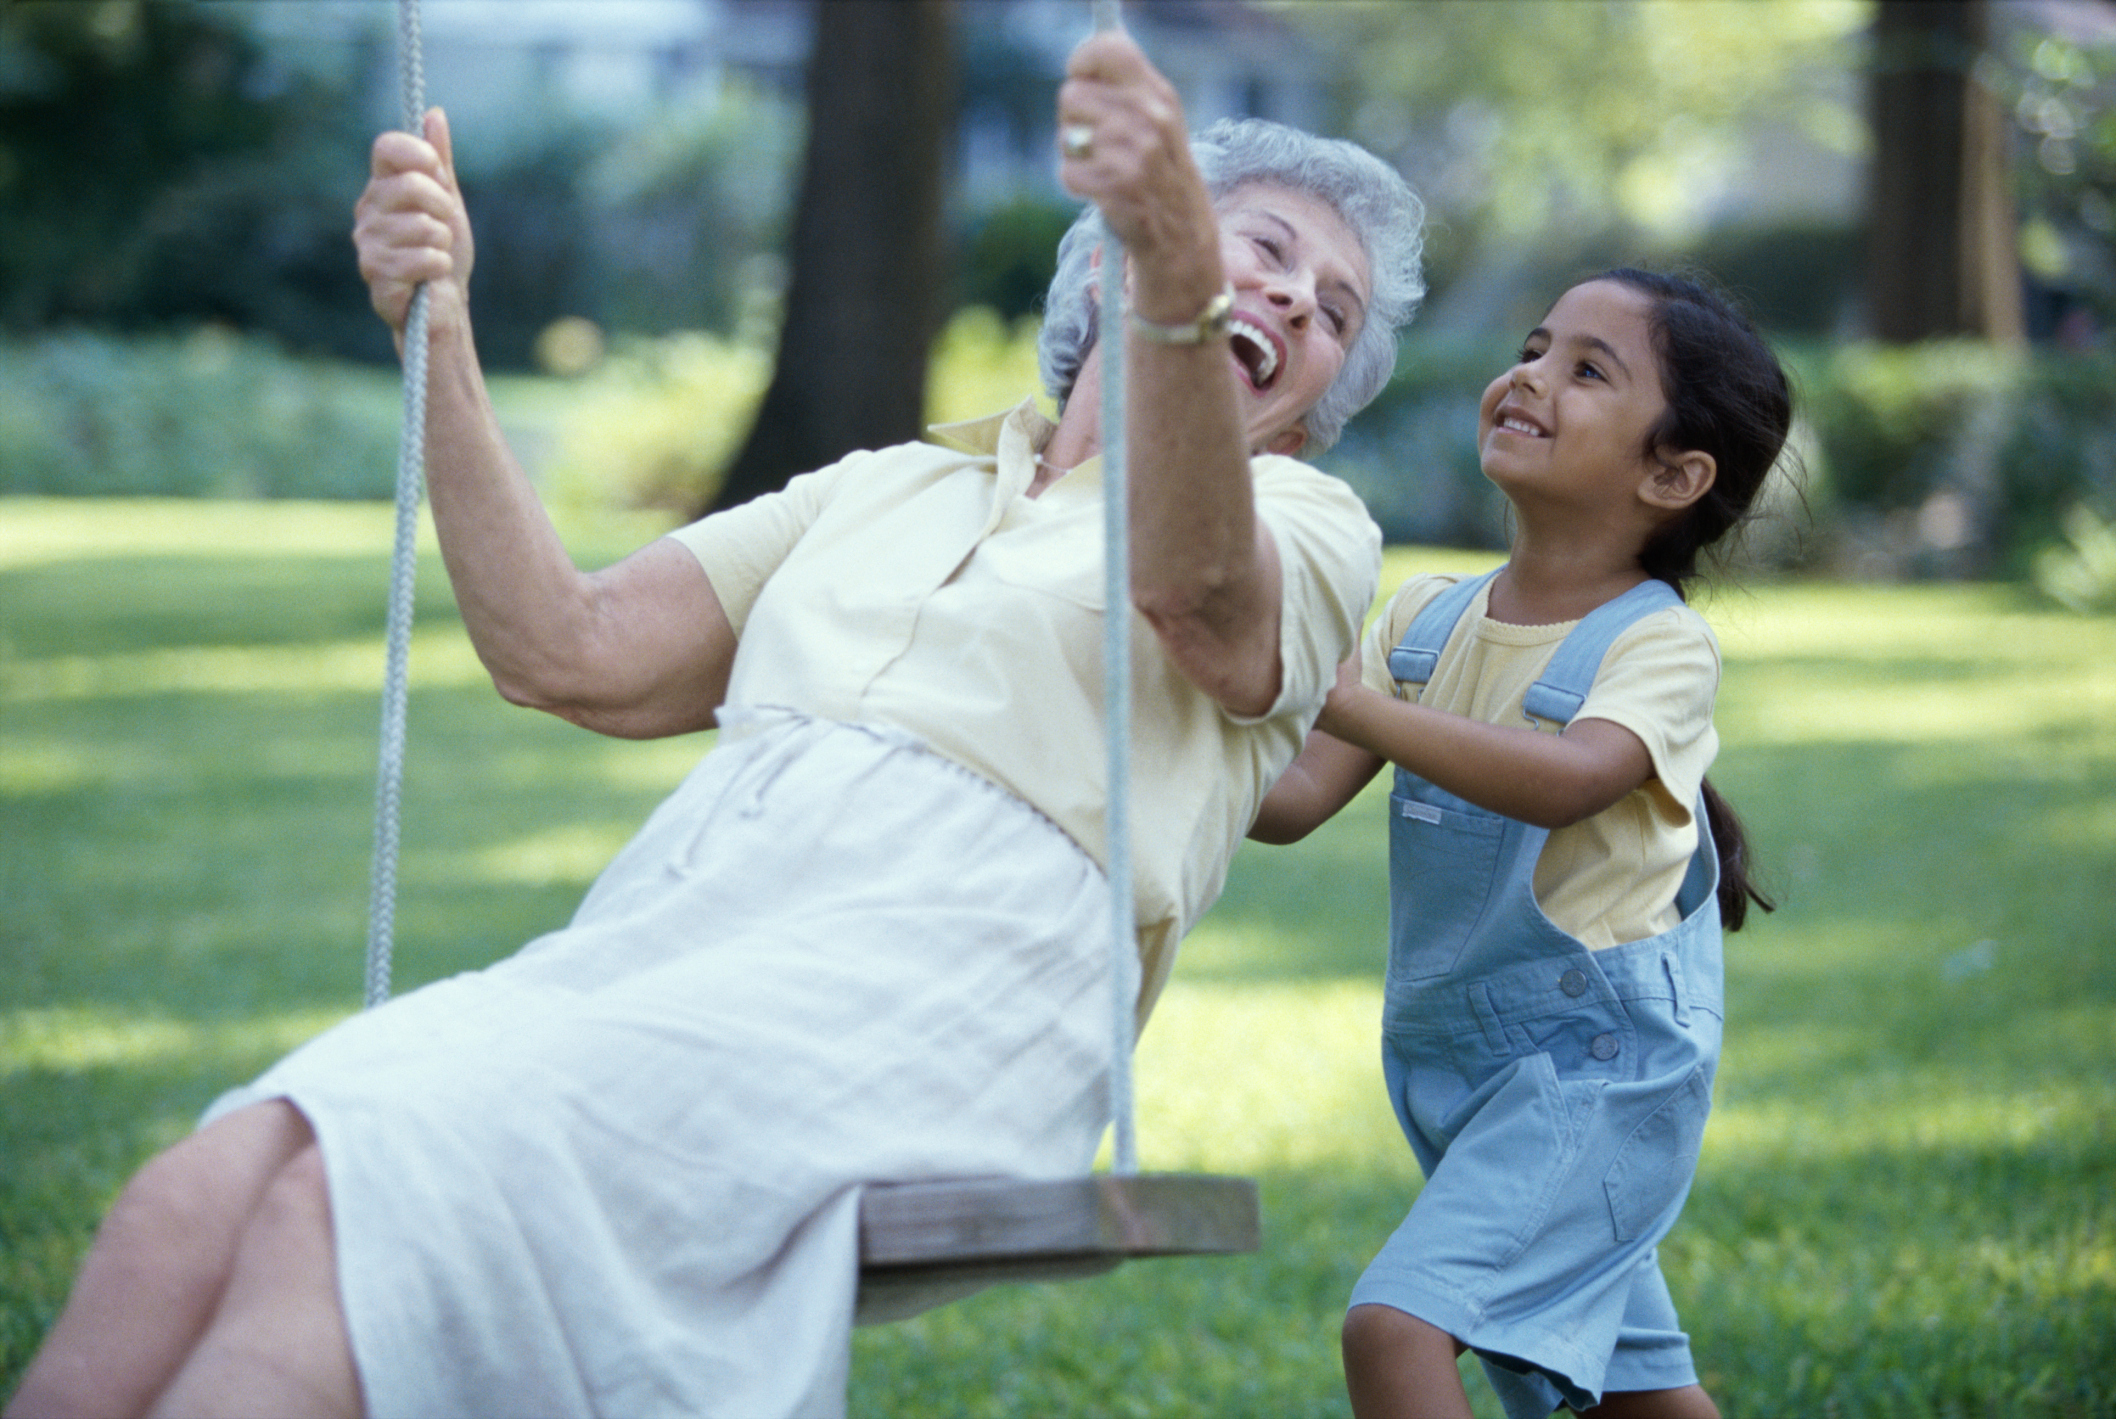 A granddaughter pushing her grandmother on a swing